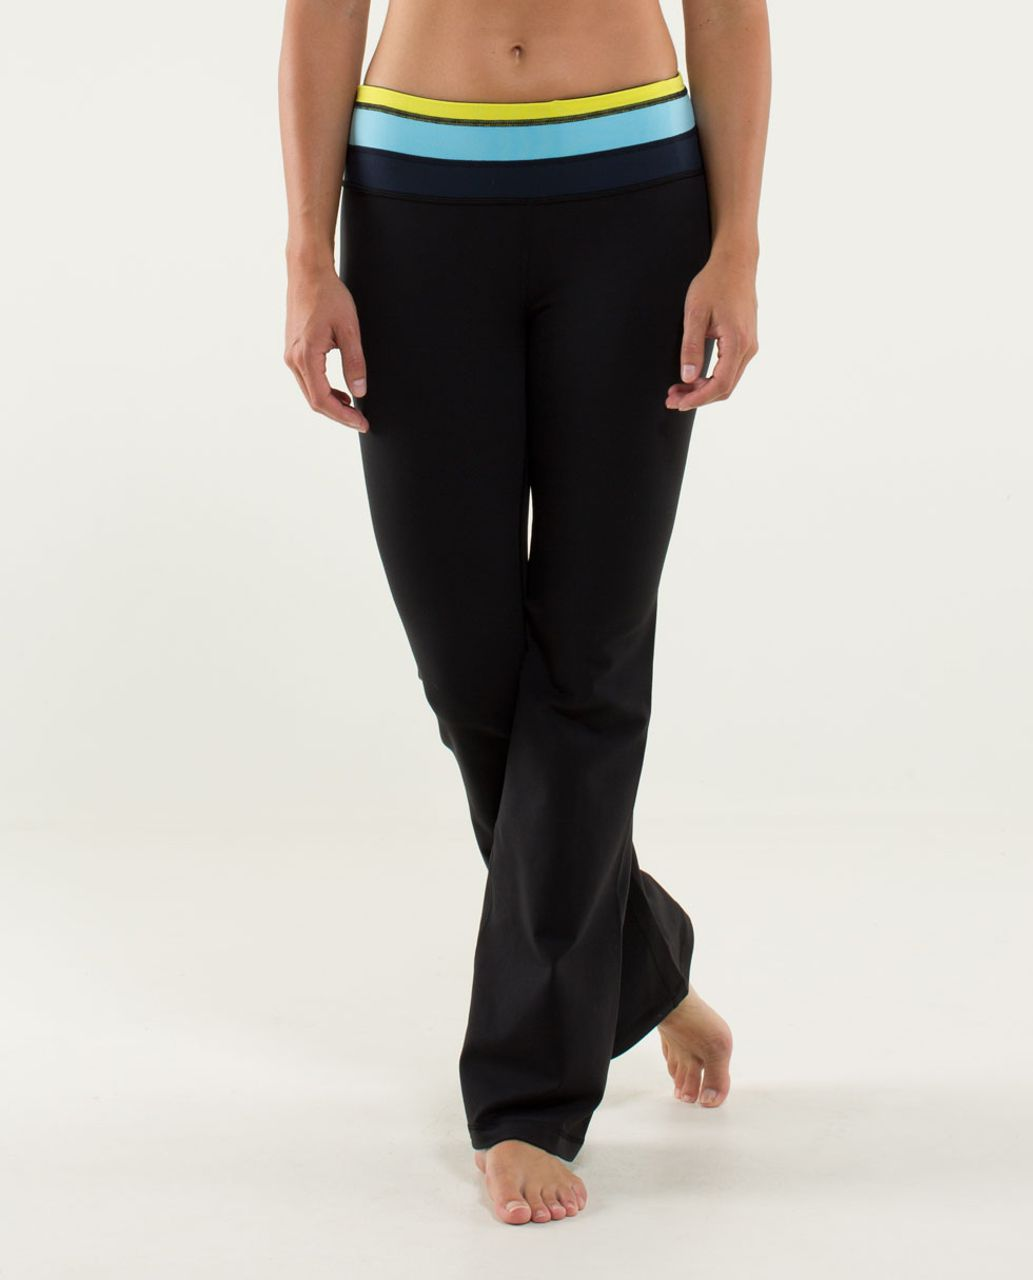 Lululemon Groove Pant (Regular) - Black / Quilt 04 Fall 2013